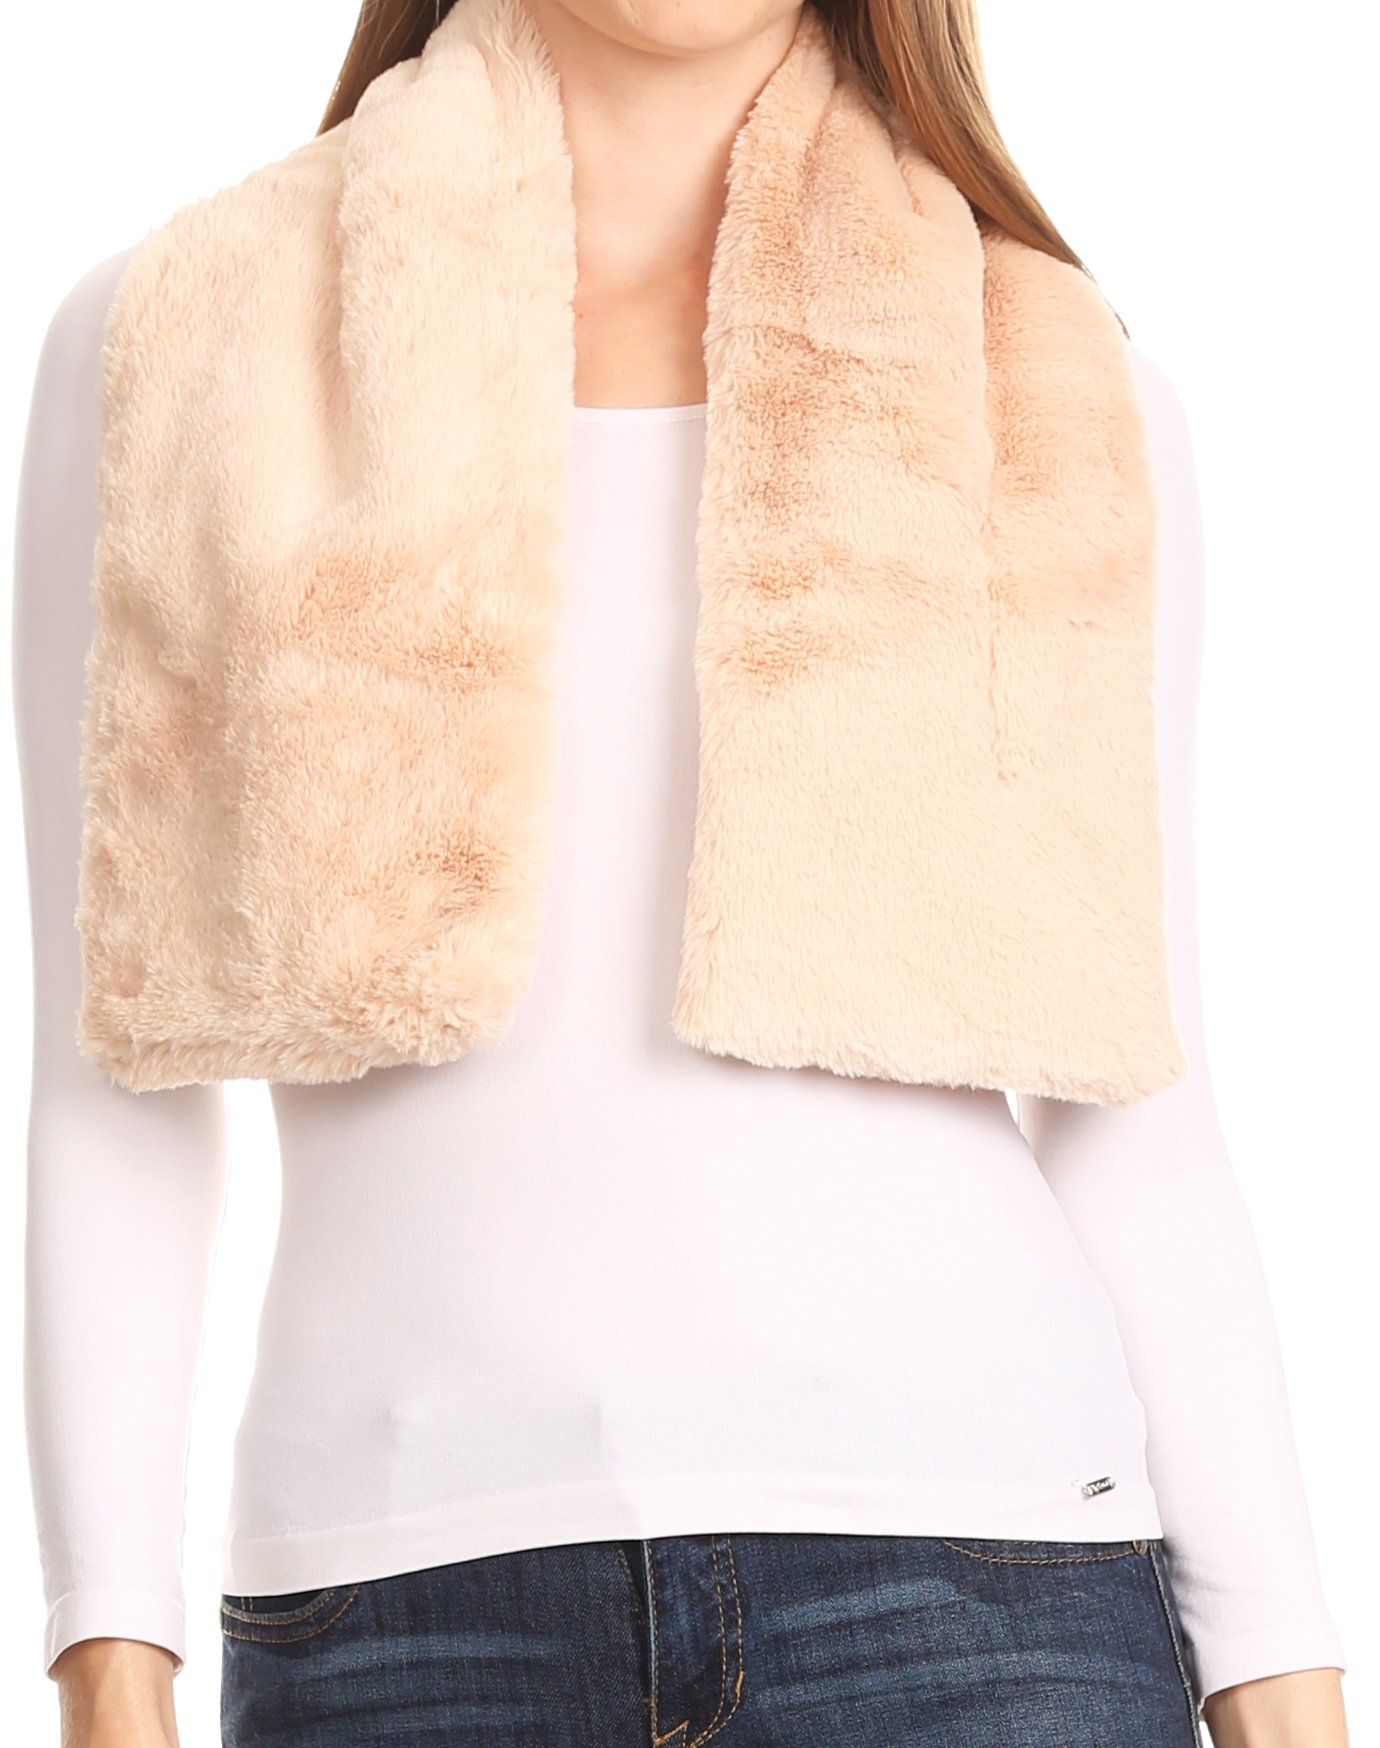 Sakkas 16112 - Malen Long Rectangle Faux Fur Warm Soft Furry Wrap Around Loophole Scarf - Beige - OS